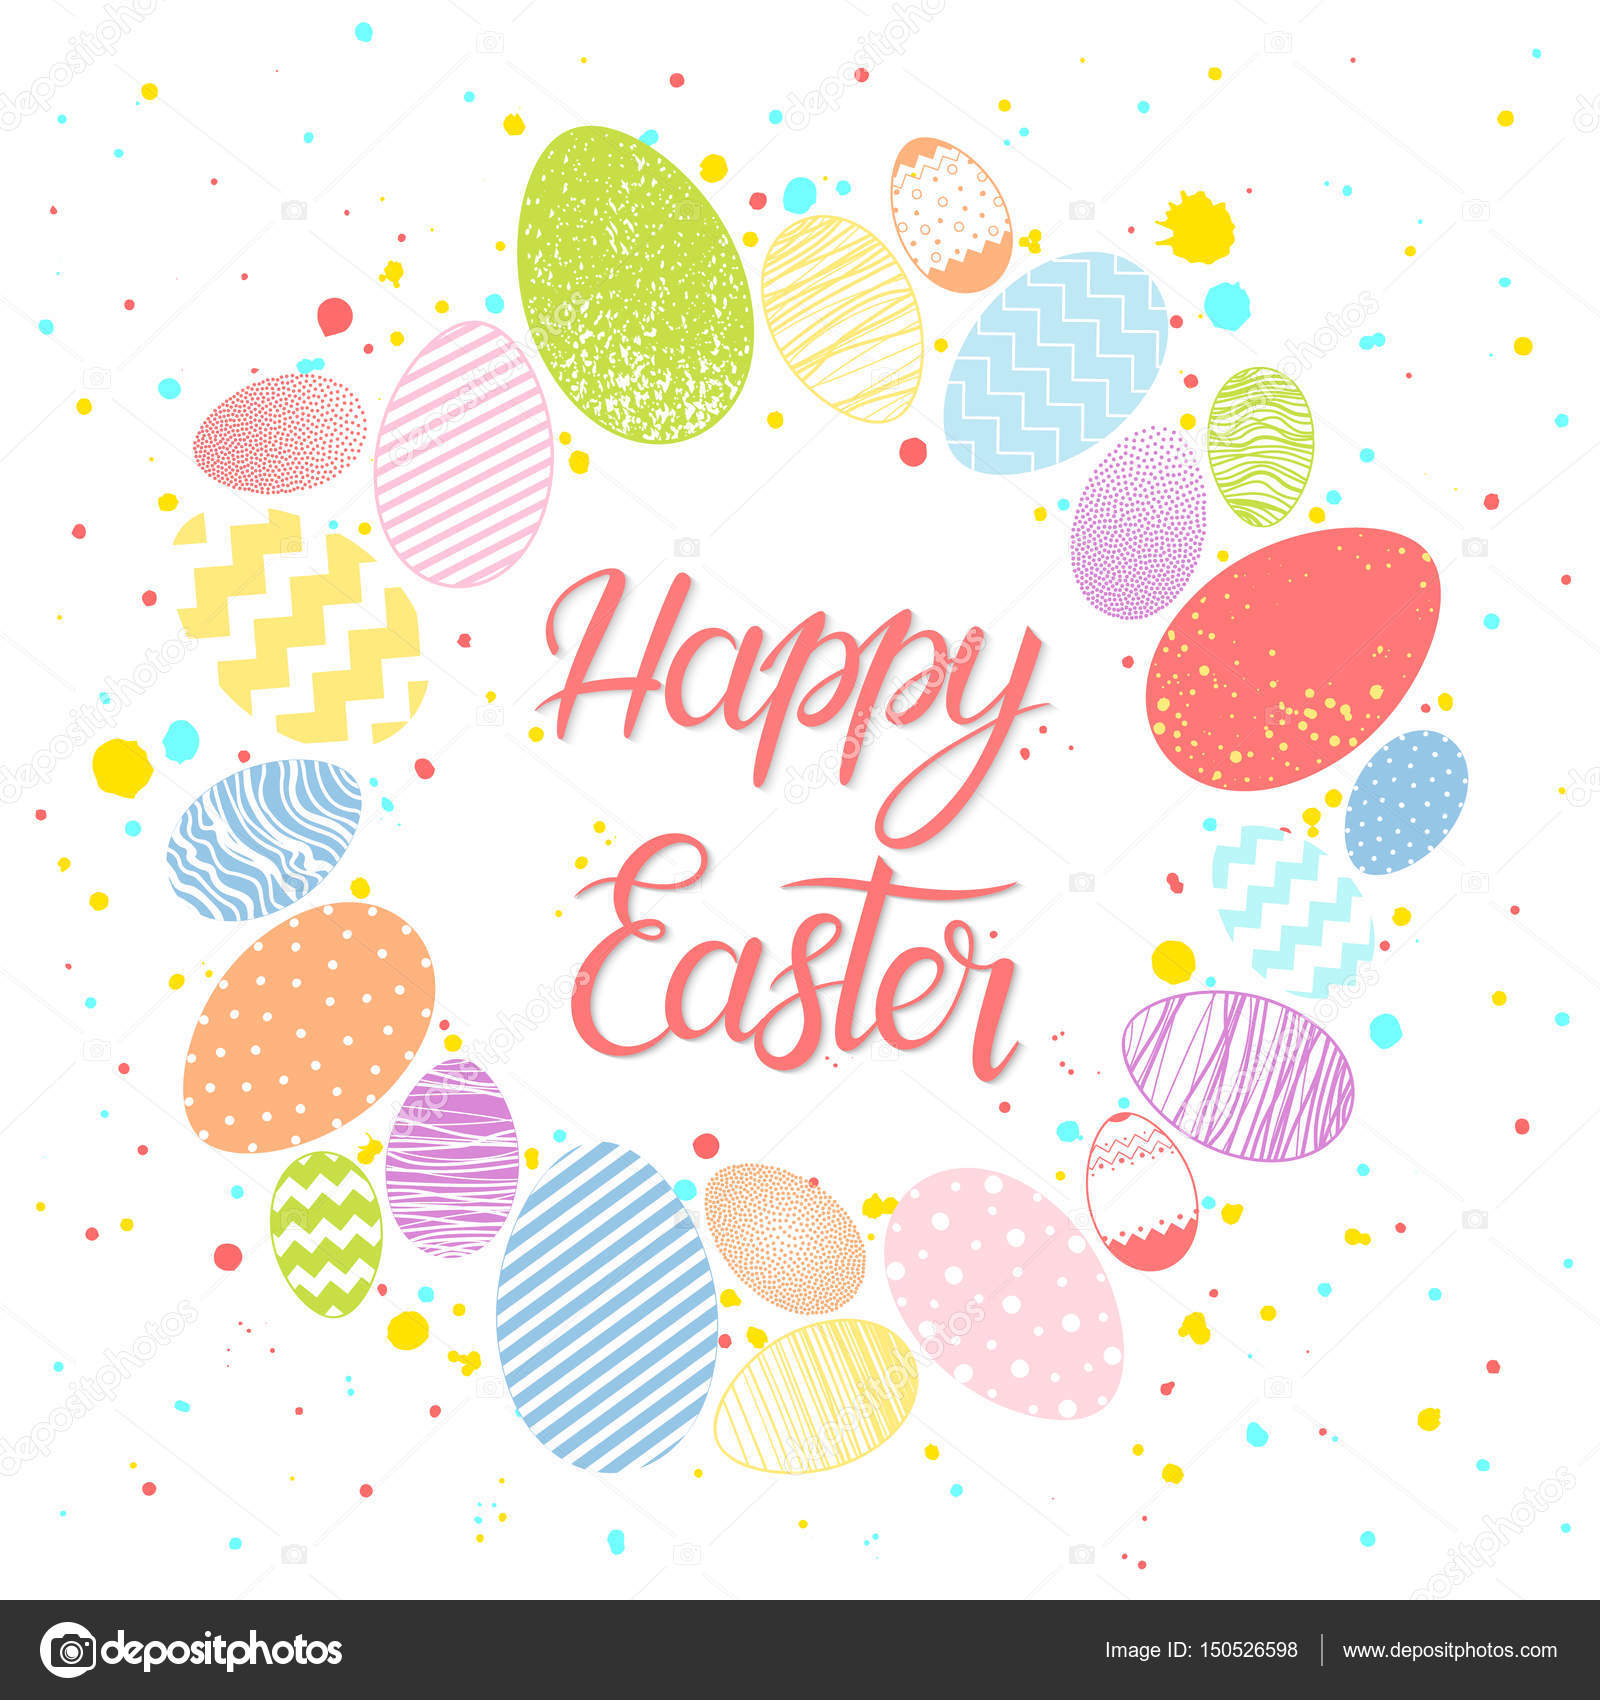 Easter Seasons Greetings Card Stock Vector Xeniaartwork 150526598